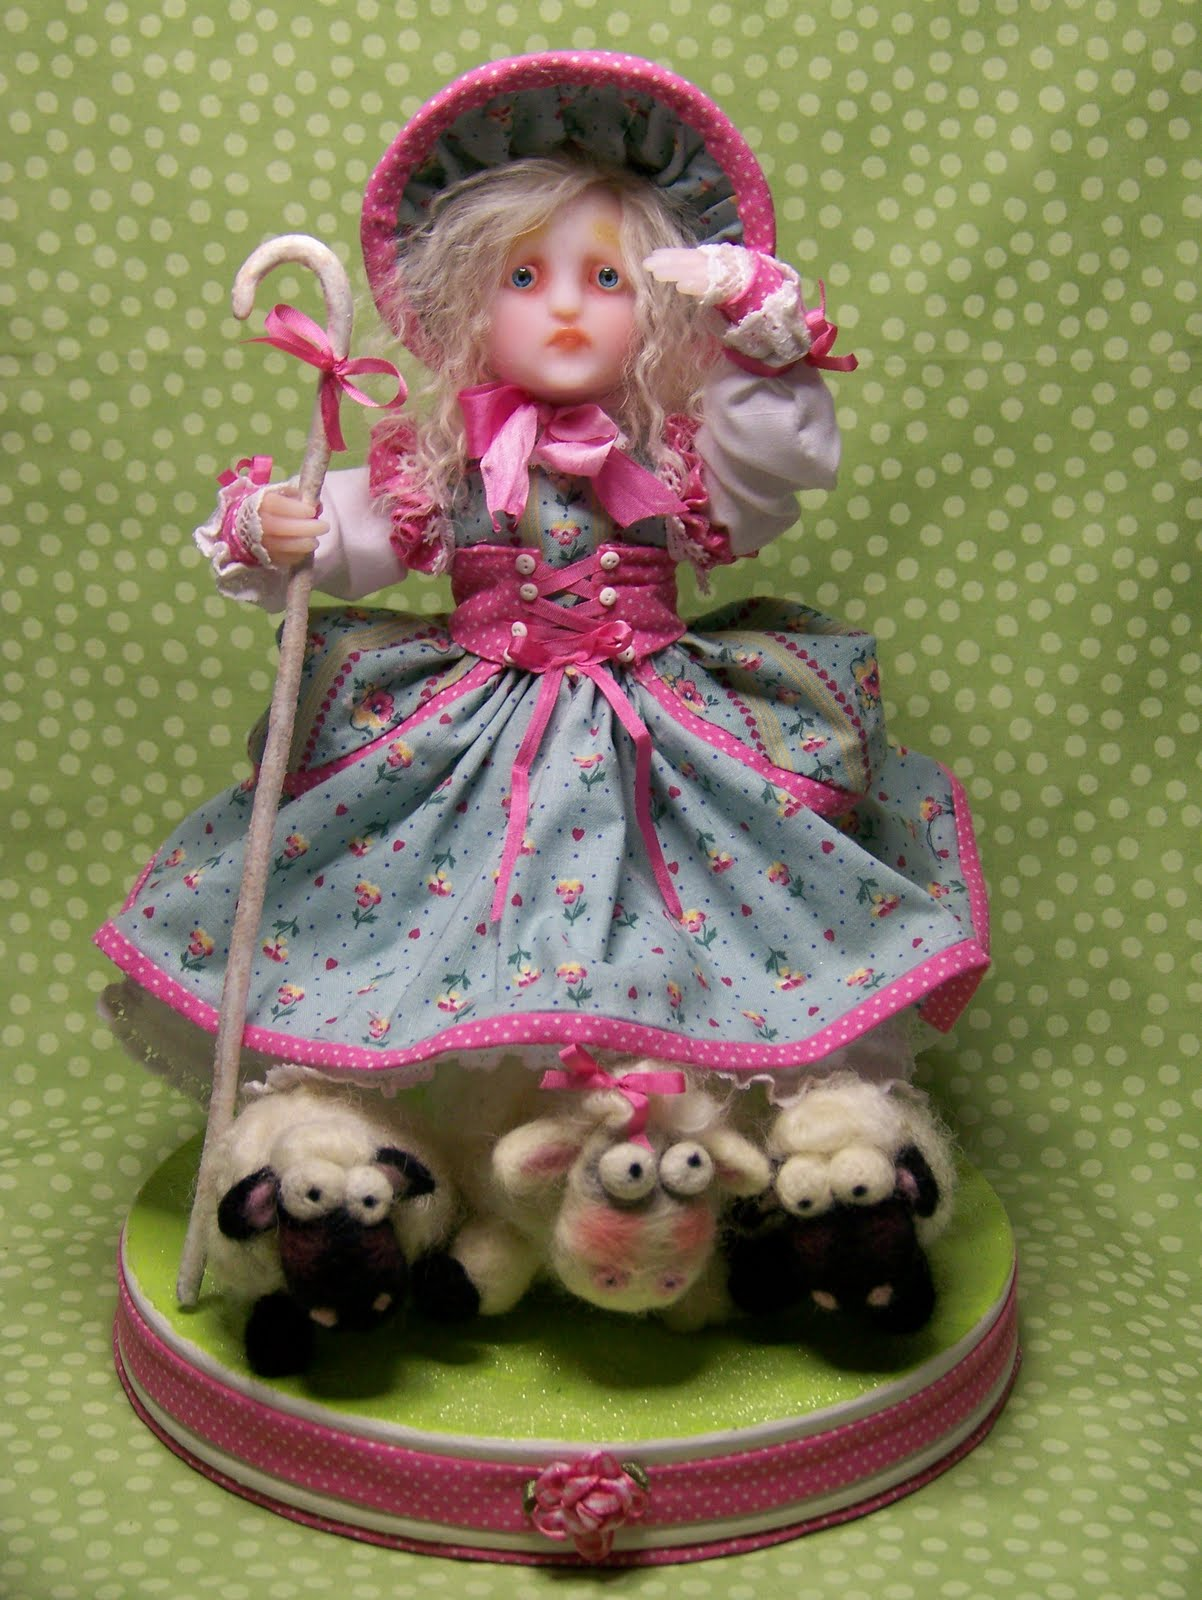 Woman's Best Friend: Little Bo Peep Knows Her Sheep